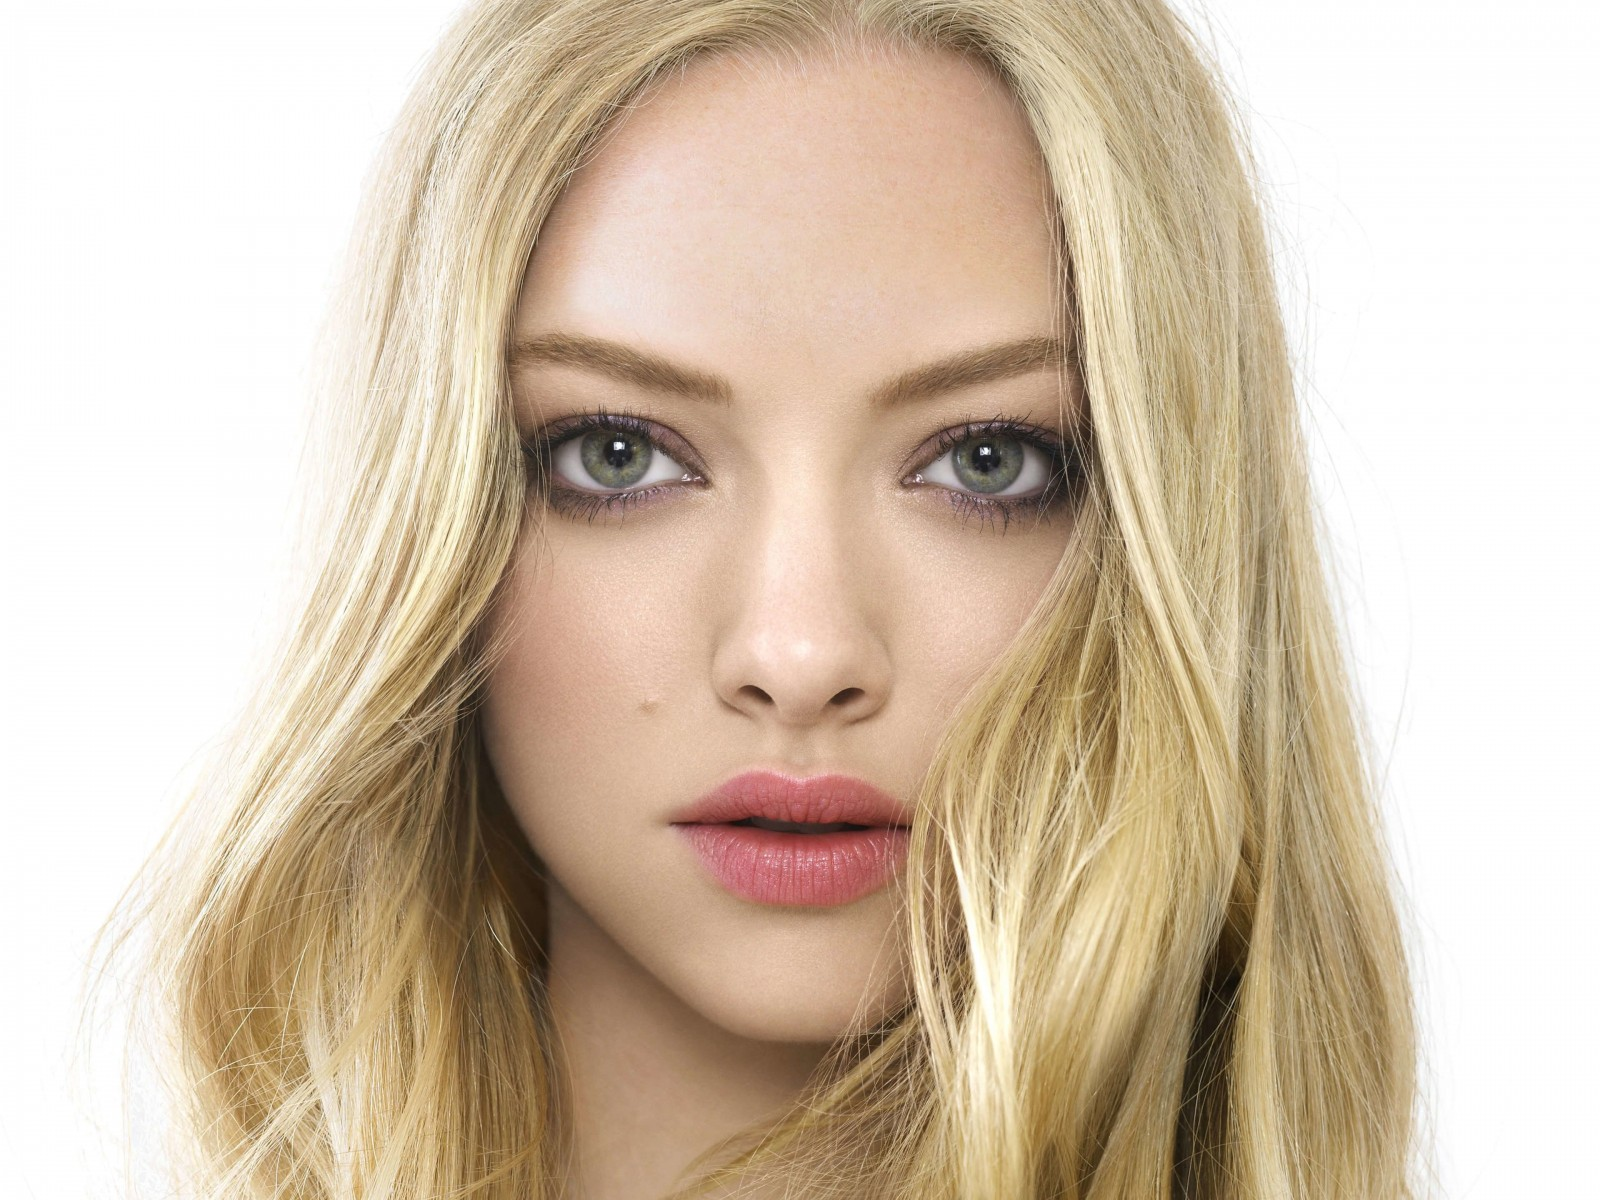 Amanda Seyfried Portrait Wallpaper for Desktop 1600x1200